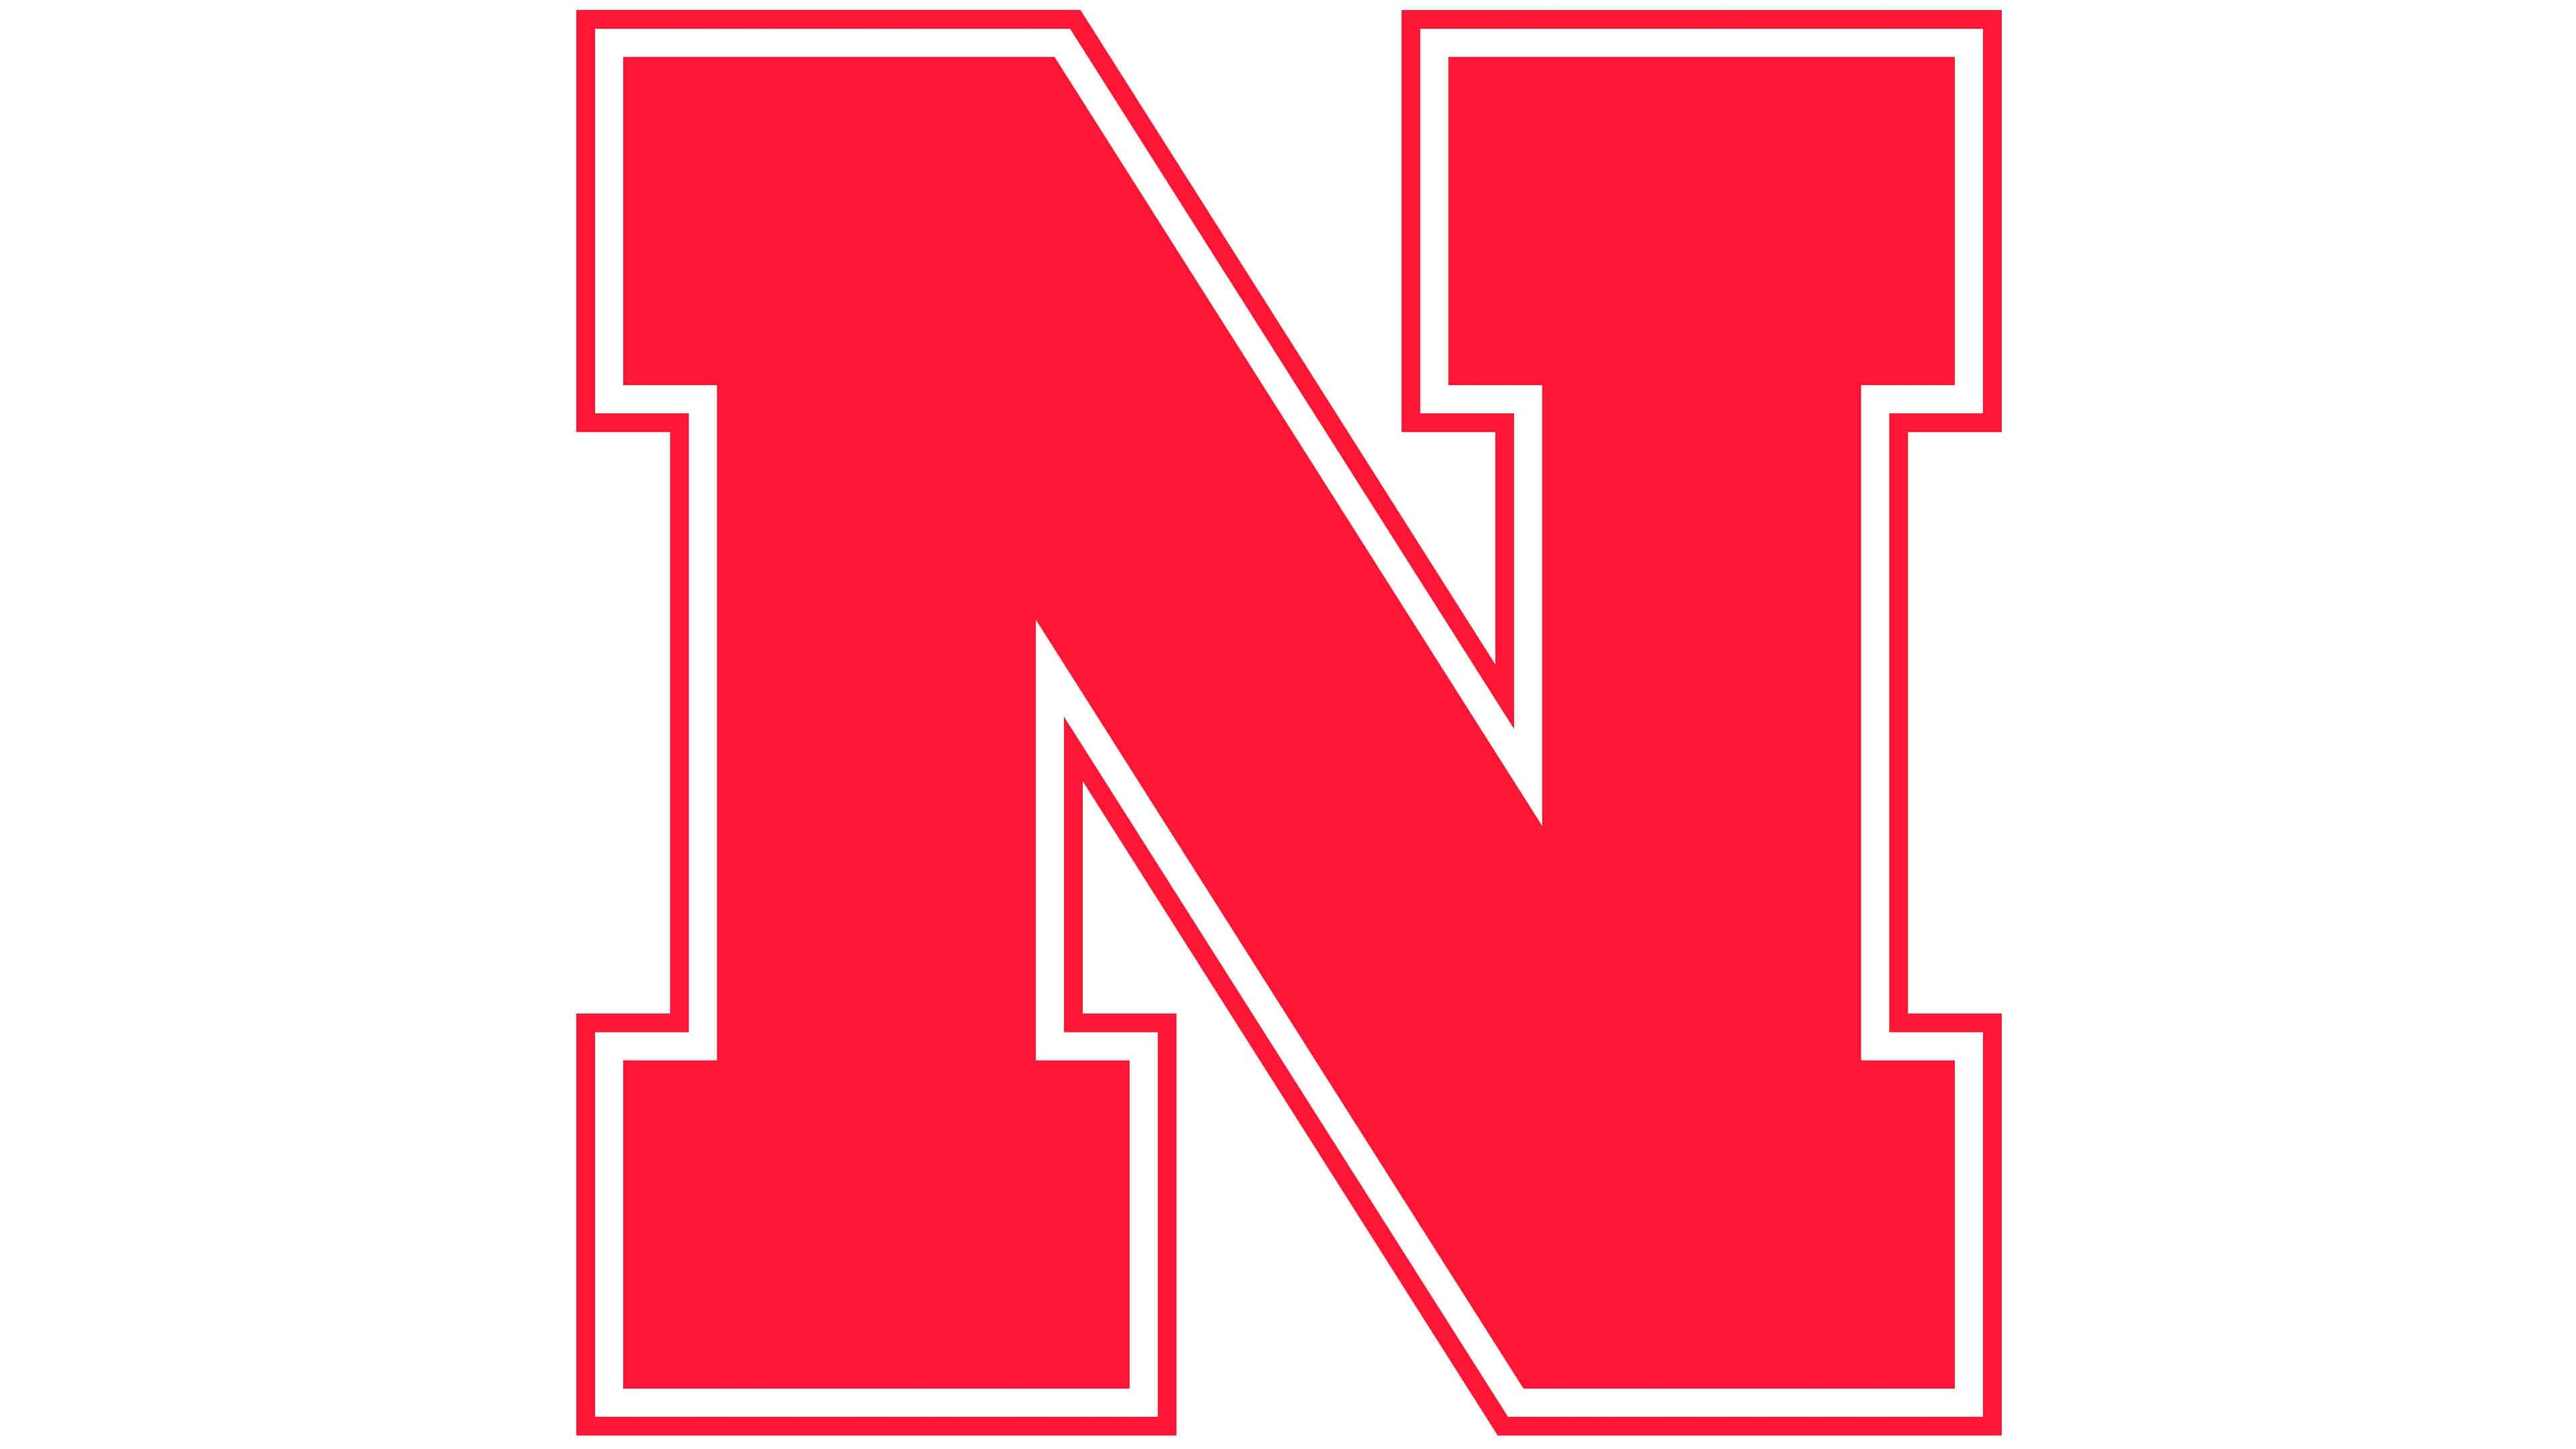 Nebraska Cornhuskers Logo The Most Famous Brands And Company Logos In The World